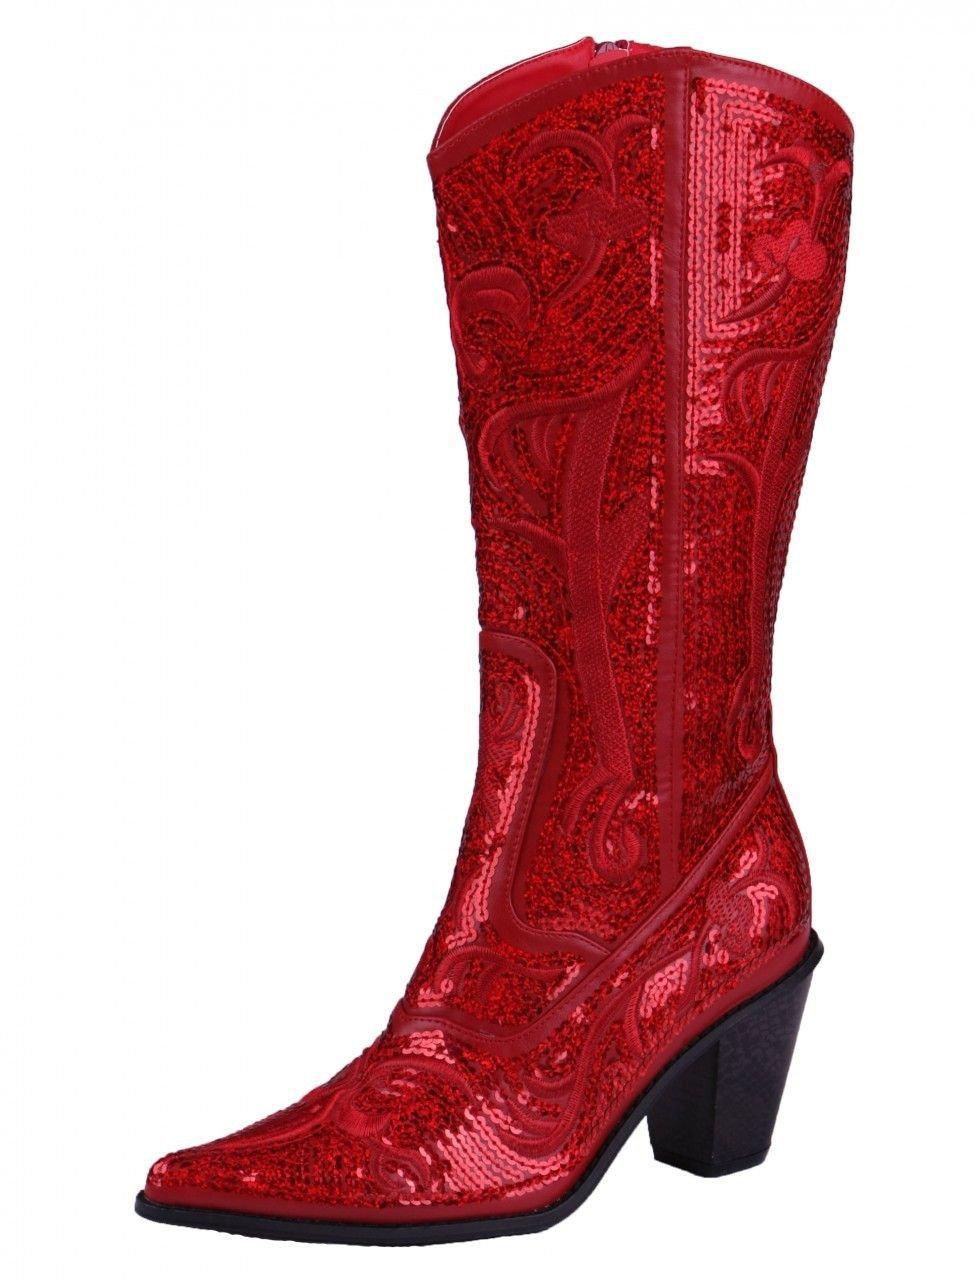 Red Shoes | Cowboy boots women, Cowgirl